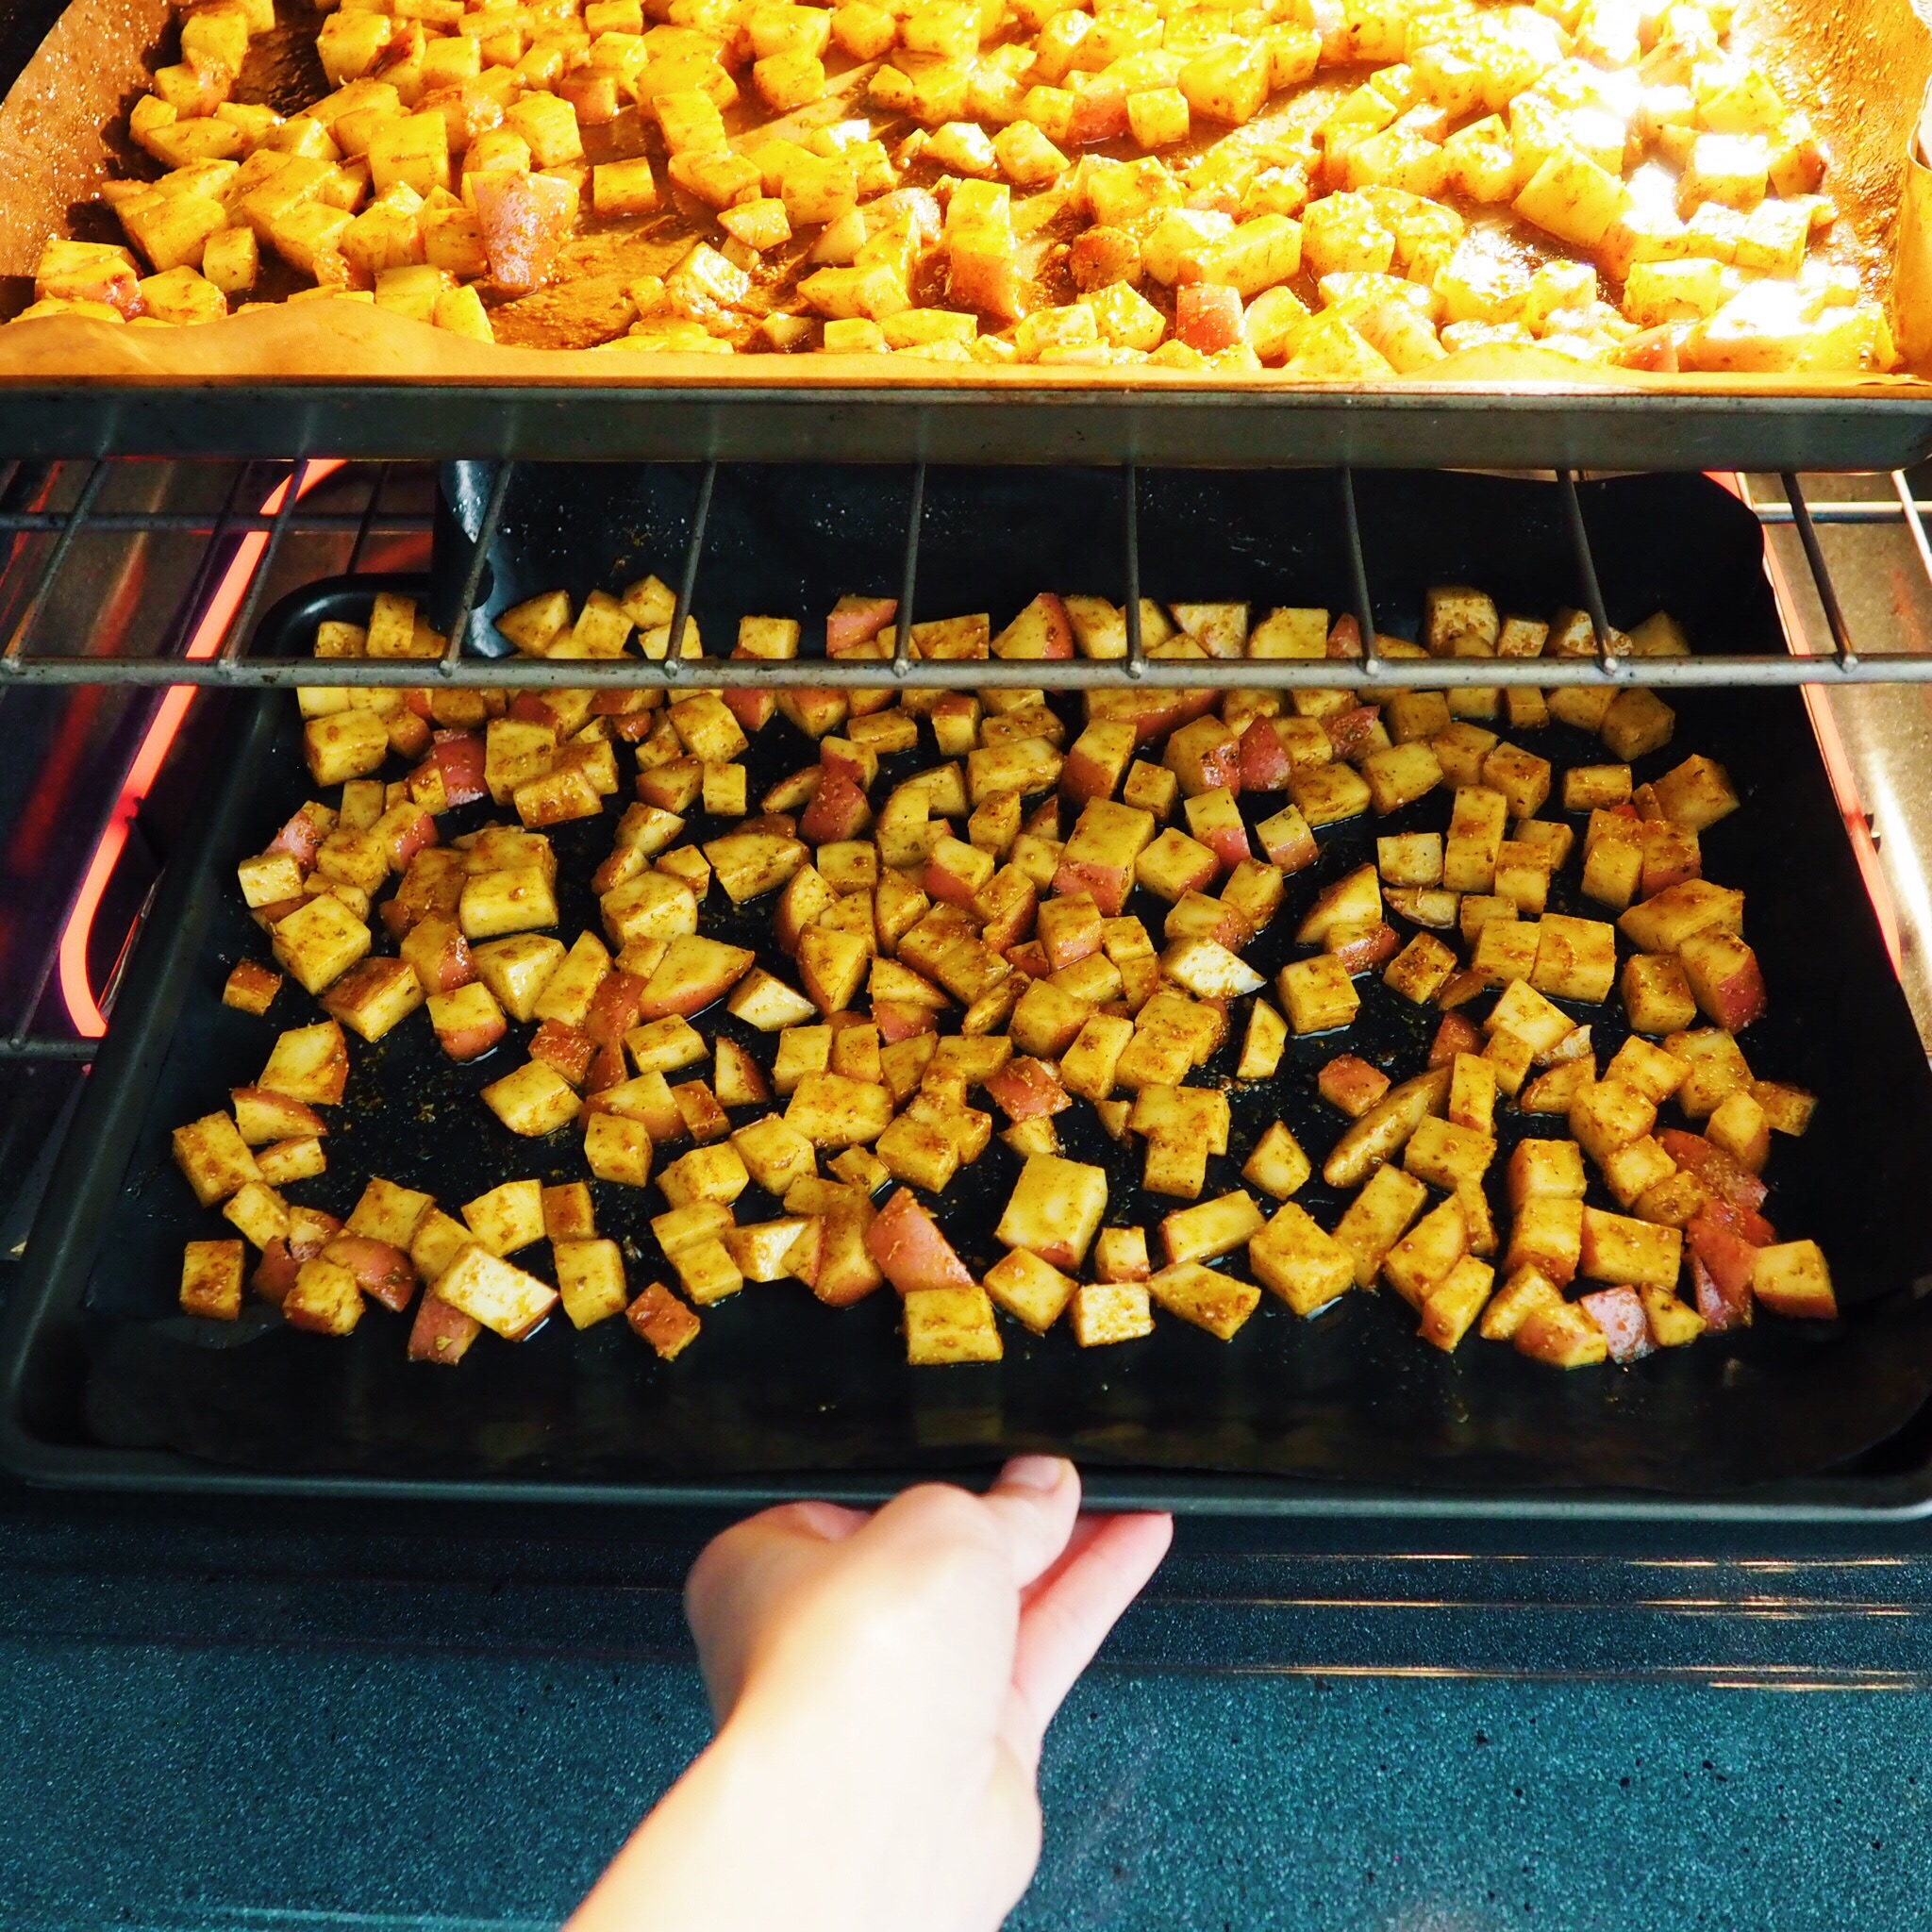 Step 6 - Bake taters for 30 minutes. Flipping them over at the halfway point and bake for another 15 minutes until golden and crispy.